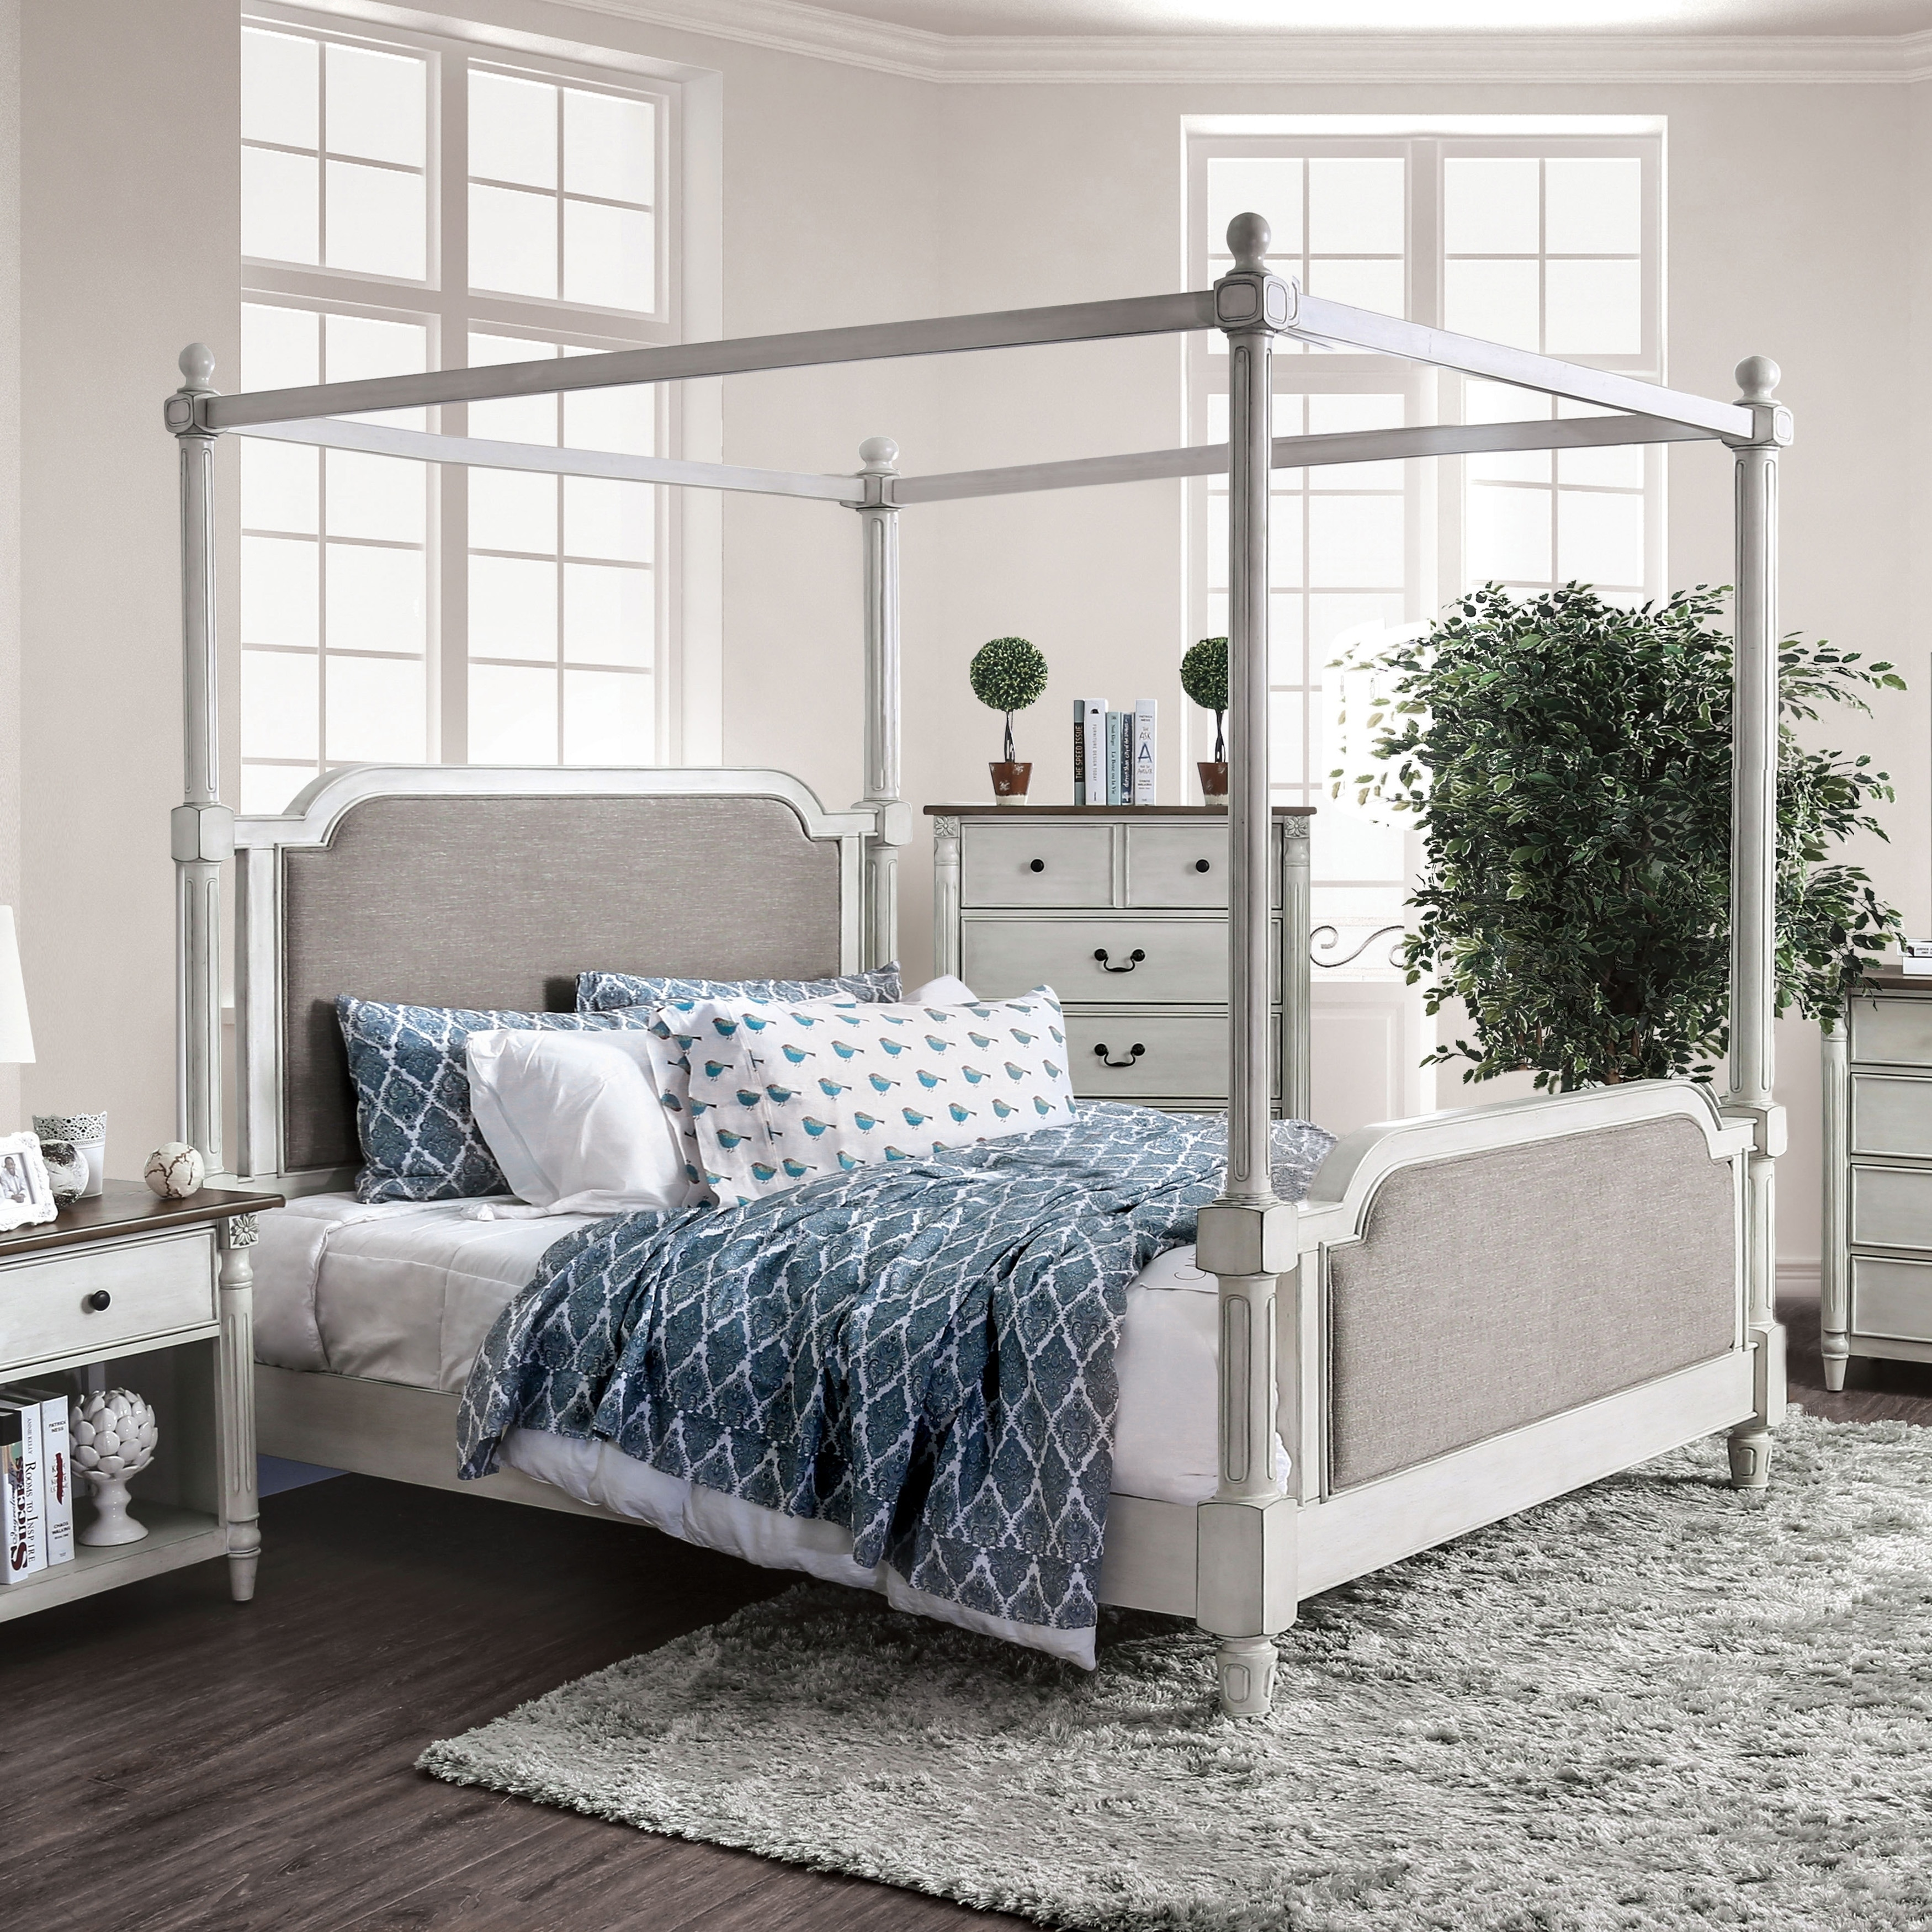 Shop Furniture Of America Morn Traditional White Fabric Padded Canopy Bed Overstock 25324626 Queen